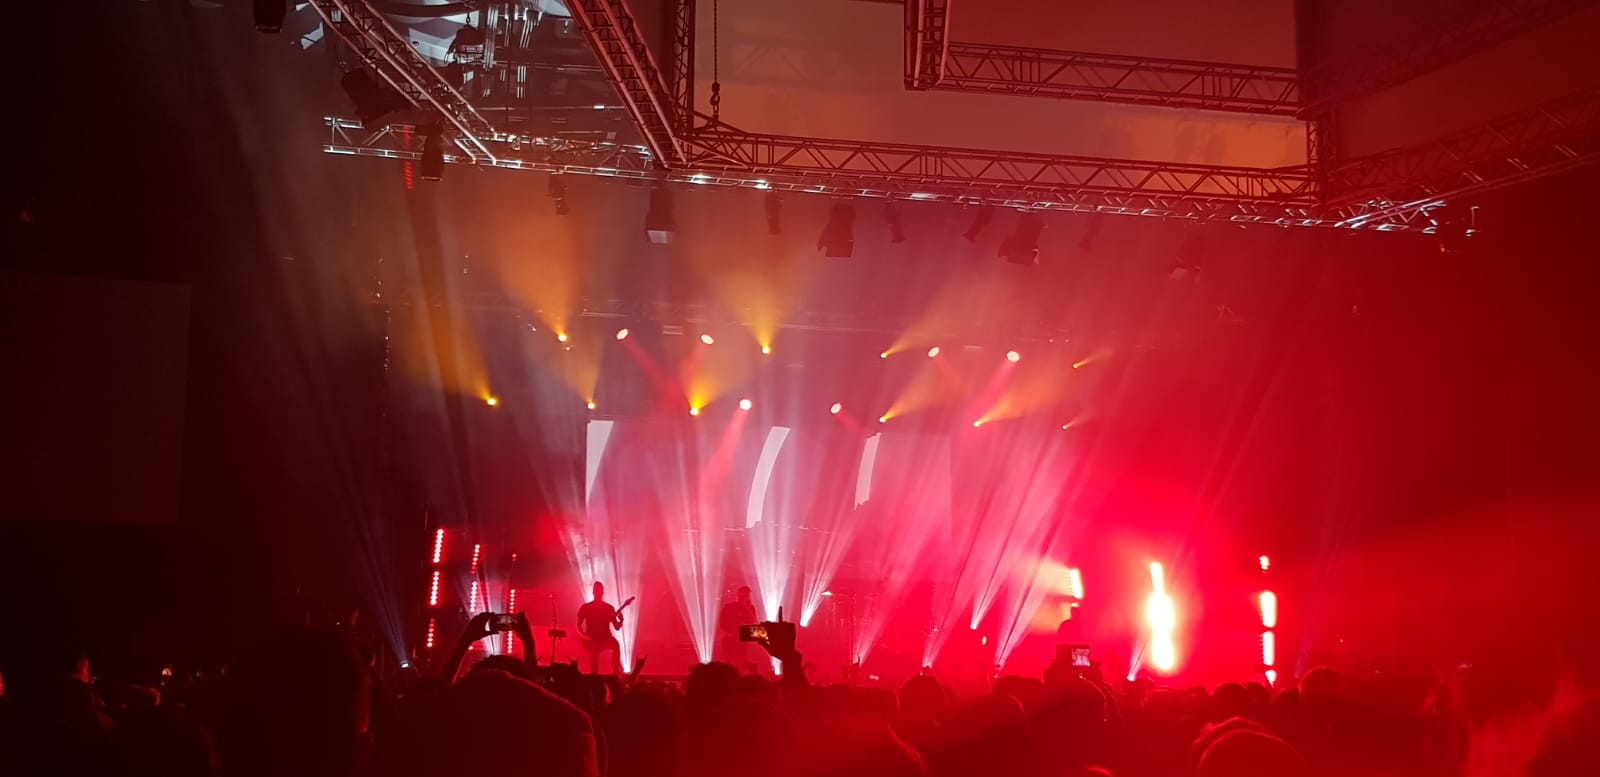 live-review-architects-beartooth-polaris-29-01-2019-planet-tt-bank-austria-halle-wien